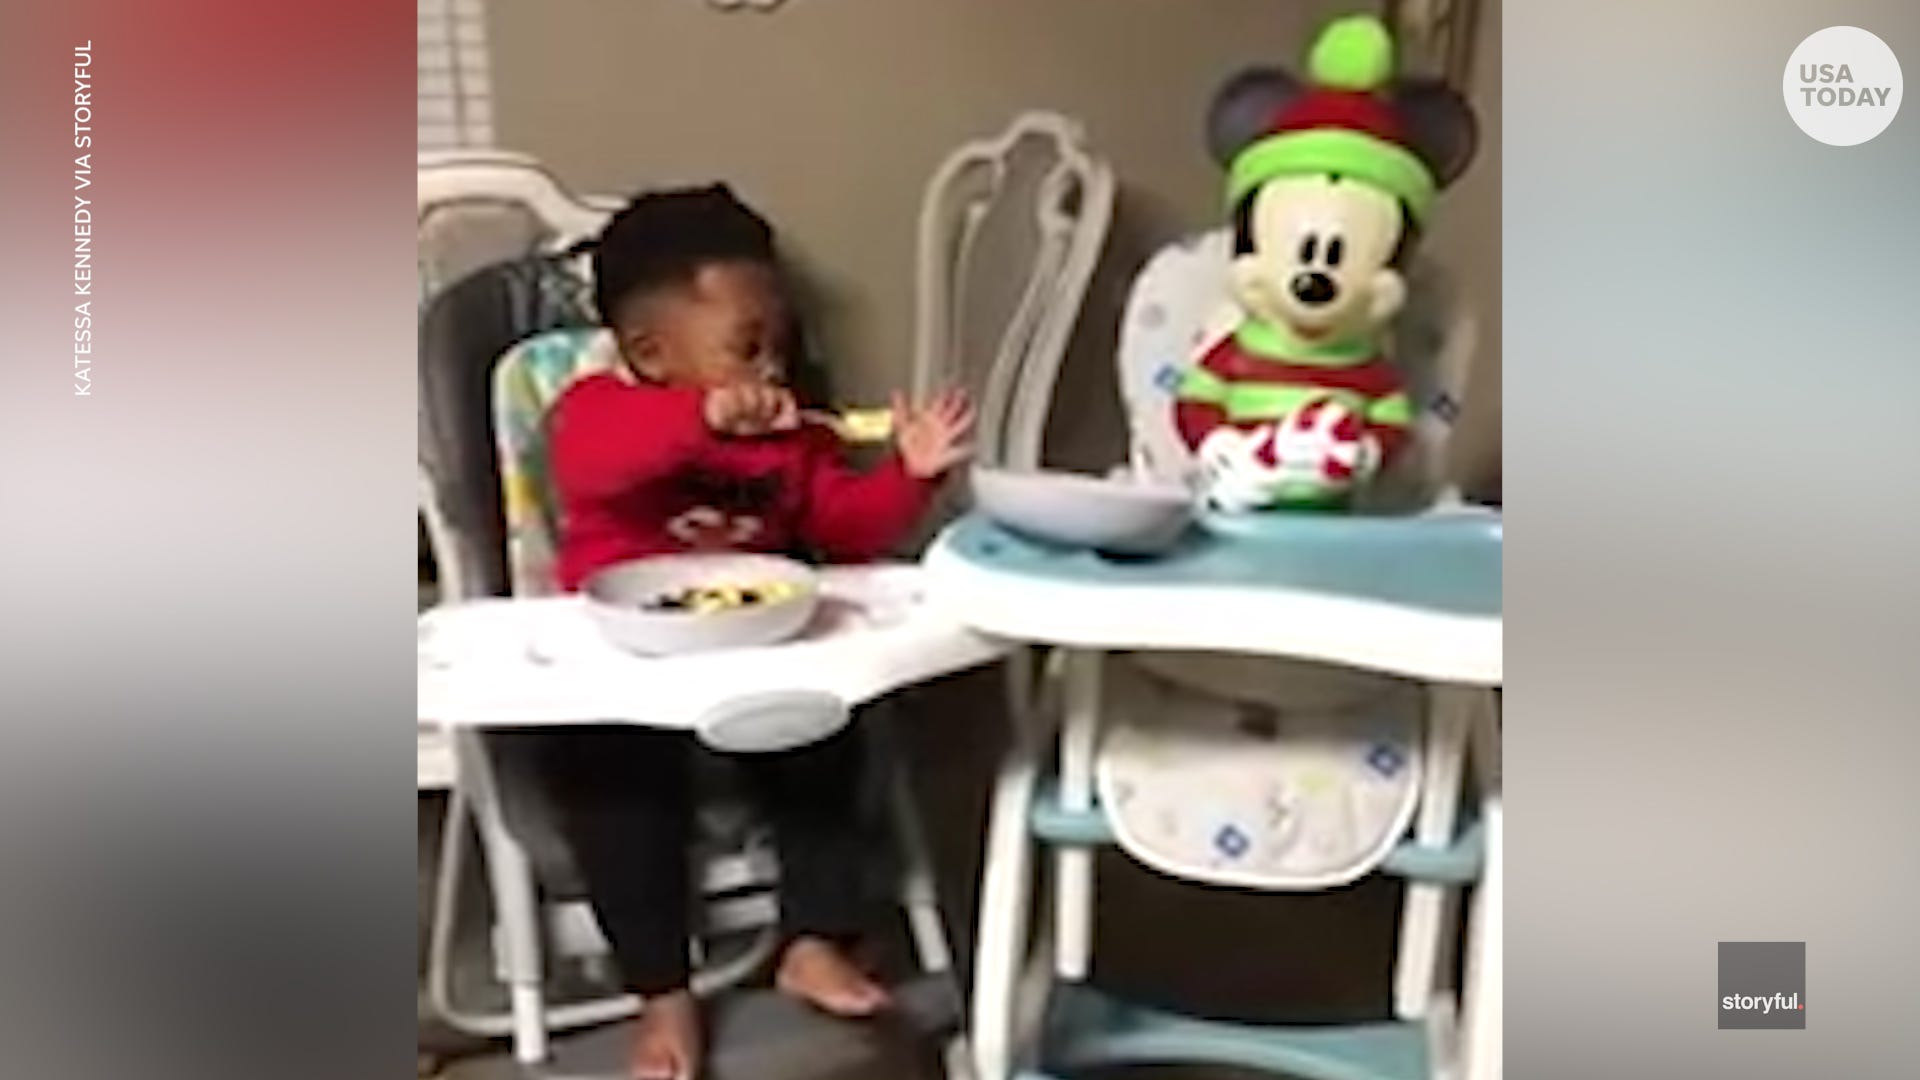 Generous toddler shares his breakfast with his buddy Mickey Mouse